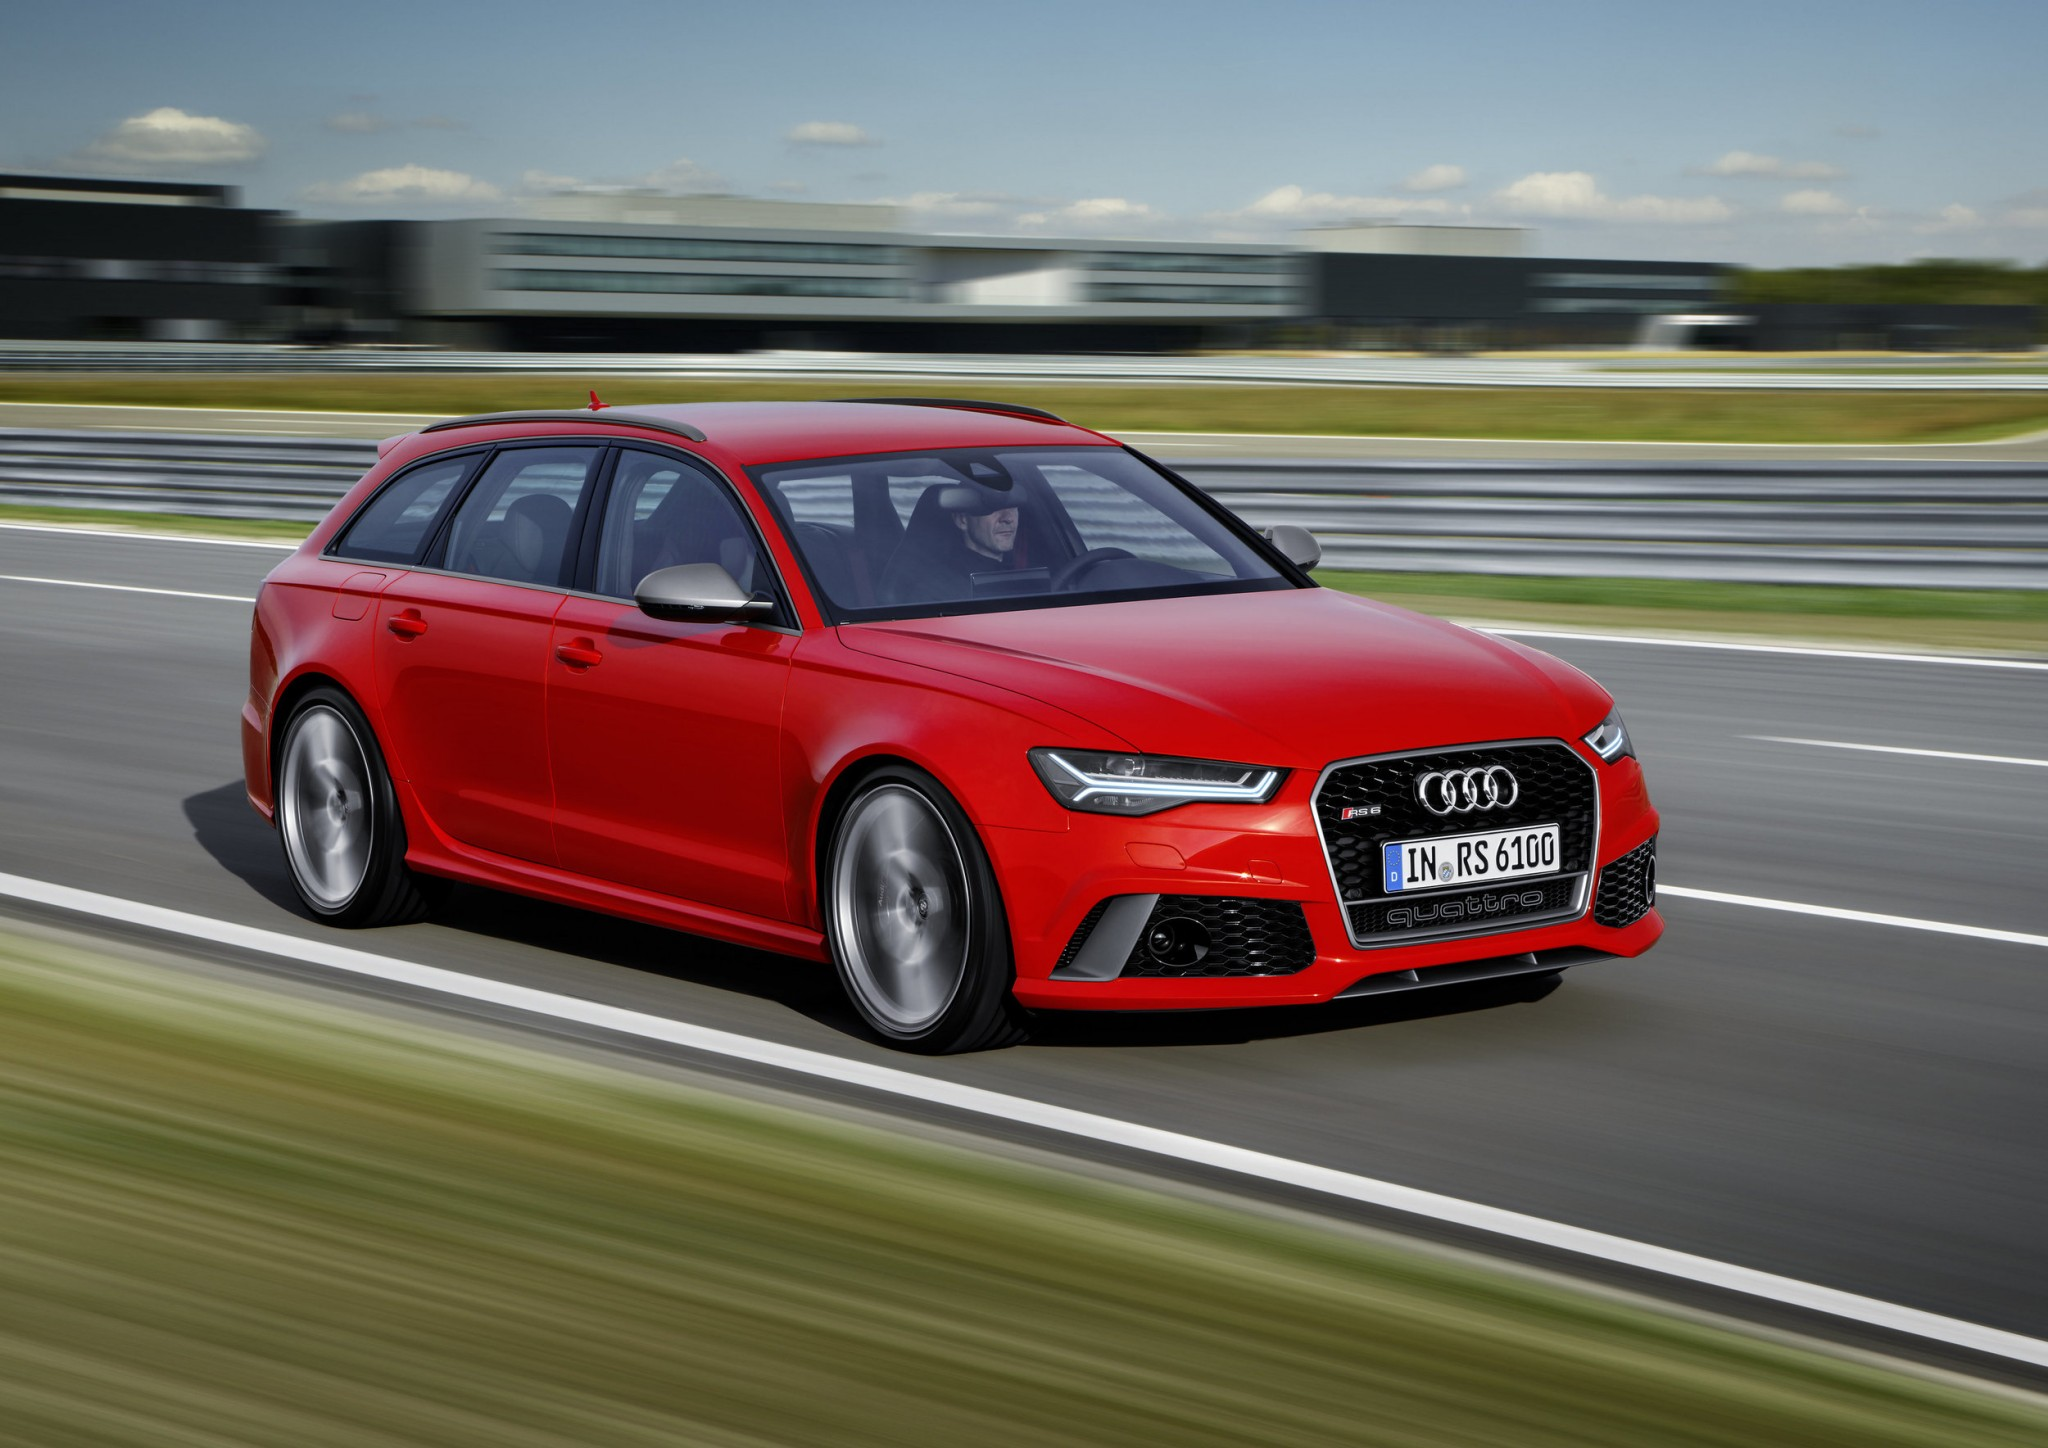 2015 Audi RS6 Avant Performance